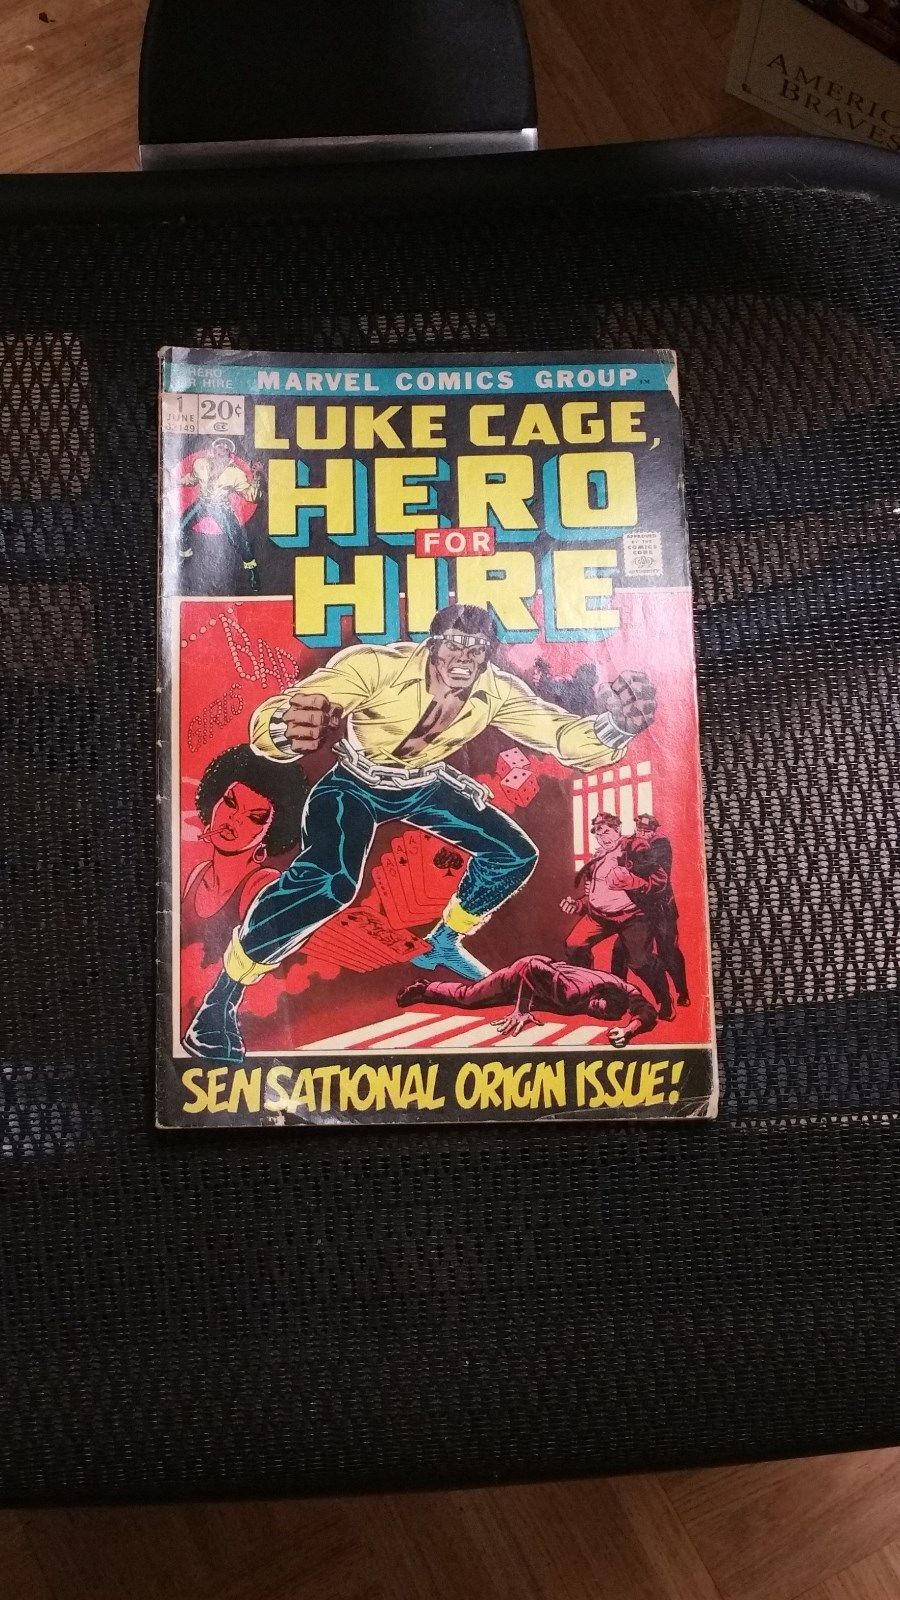 Marvel Comics Luke Cage Hero For Hire 1 June 1972 Sensational Origin Issue